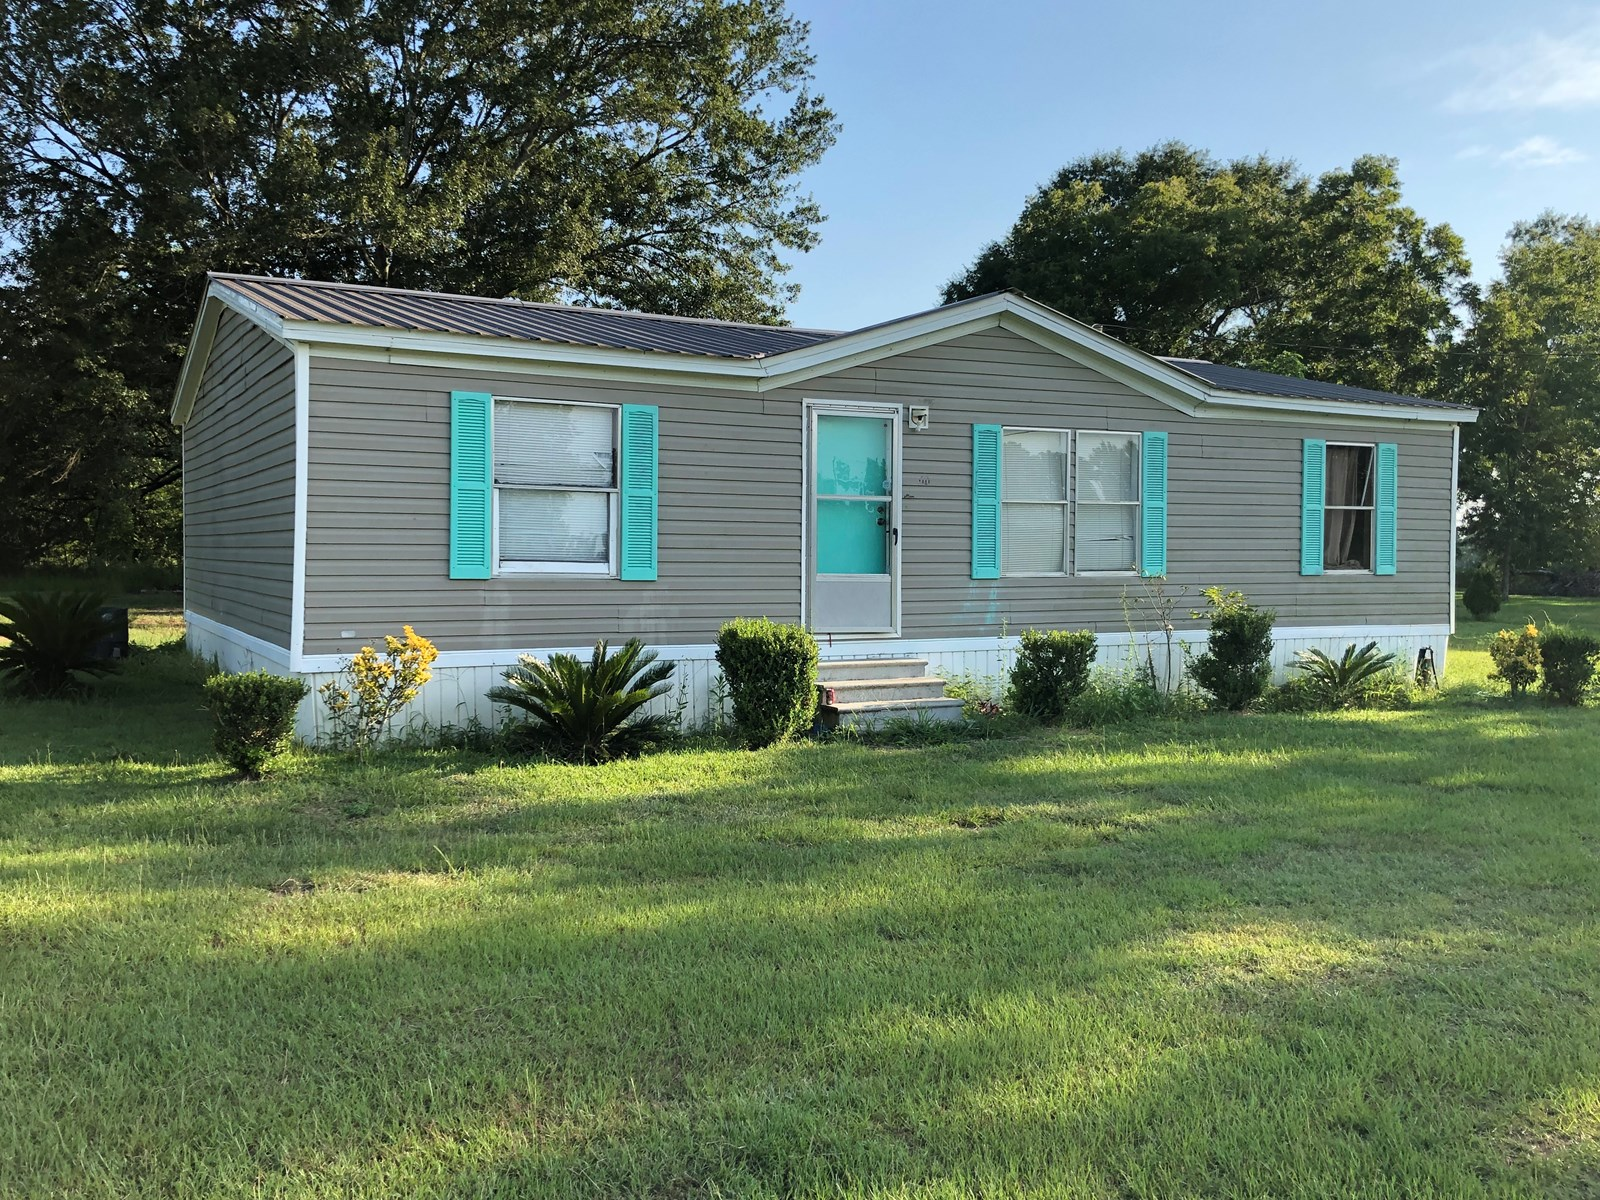 3B/2B MOBILE HOME FOR SALE BLACK, ALABAMA